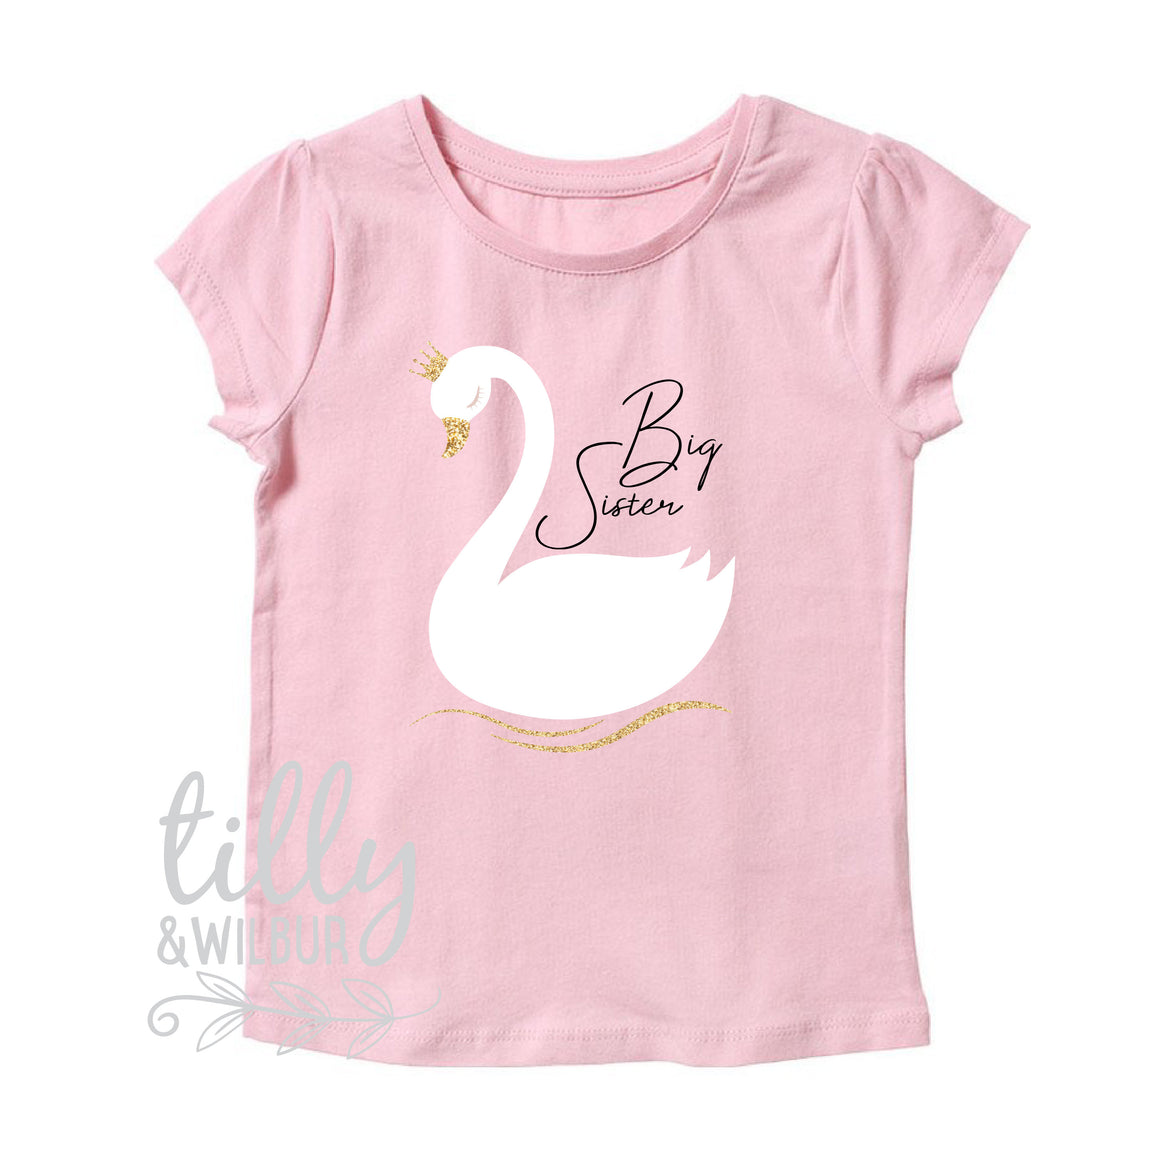 I'm Getting Promoted To Big Sister Girl's T-Shirt, Big Sister T-Shirt, I'm Going To Be A Big Sister, Big Sister Swan, Pregnancy Announcement